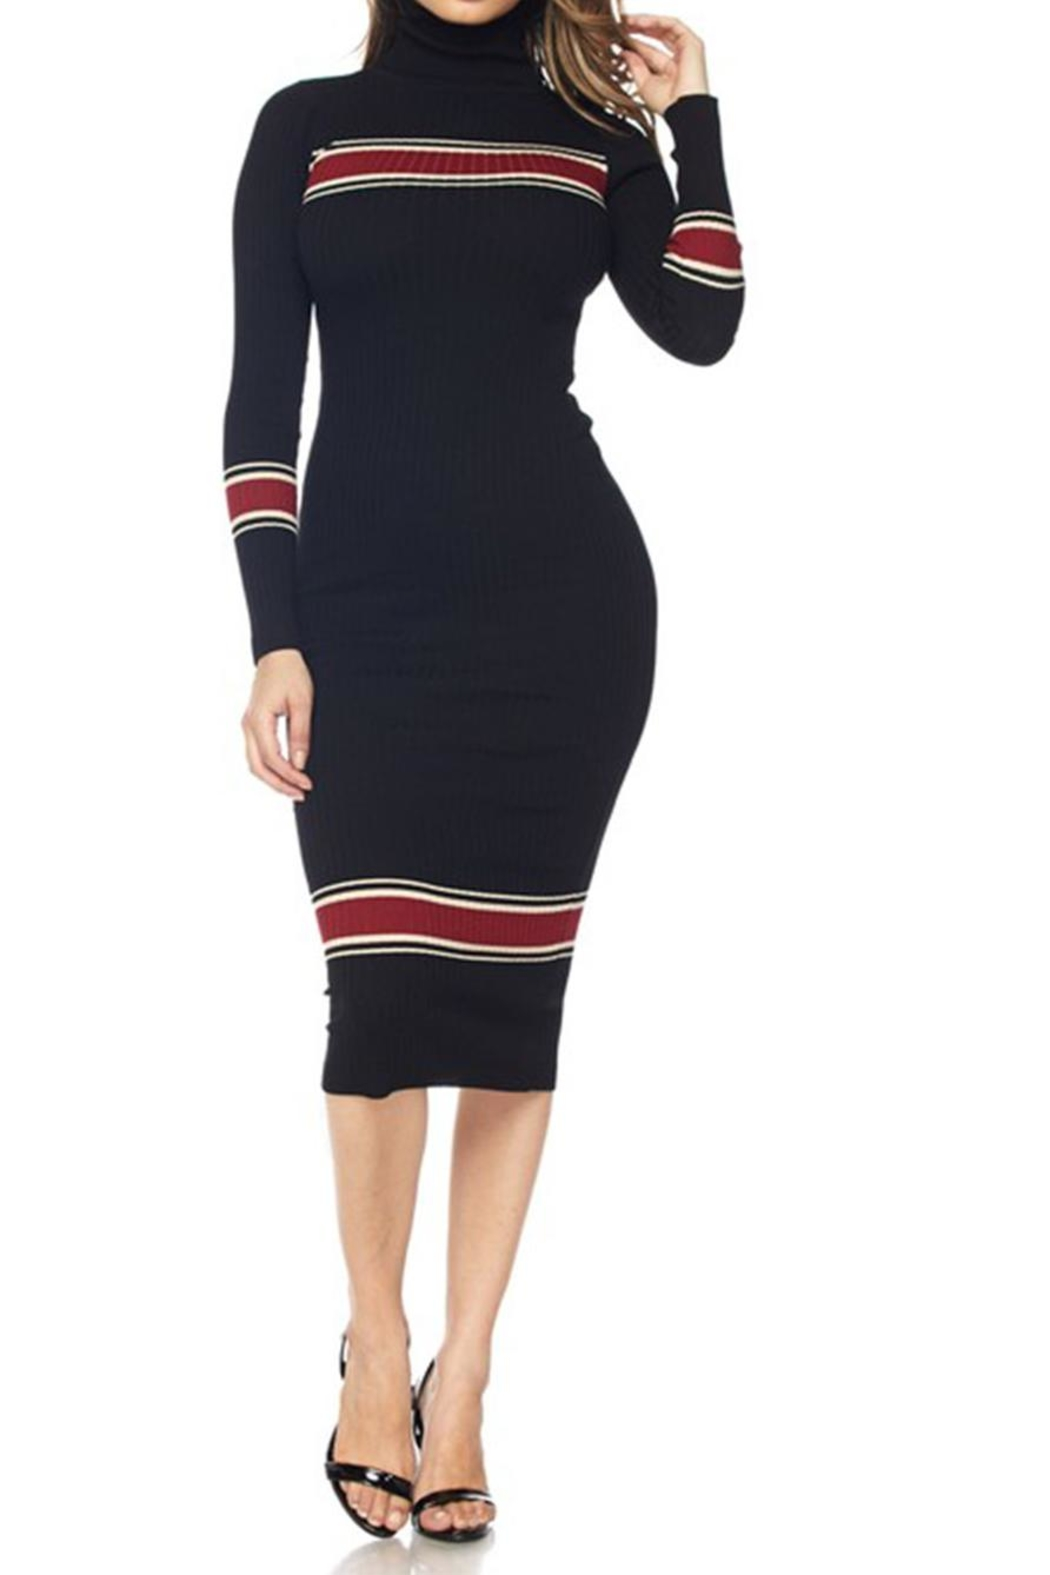 be90994464 hera collection Turtleneck Sweater Dress from New York by Dor L Dor ...